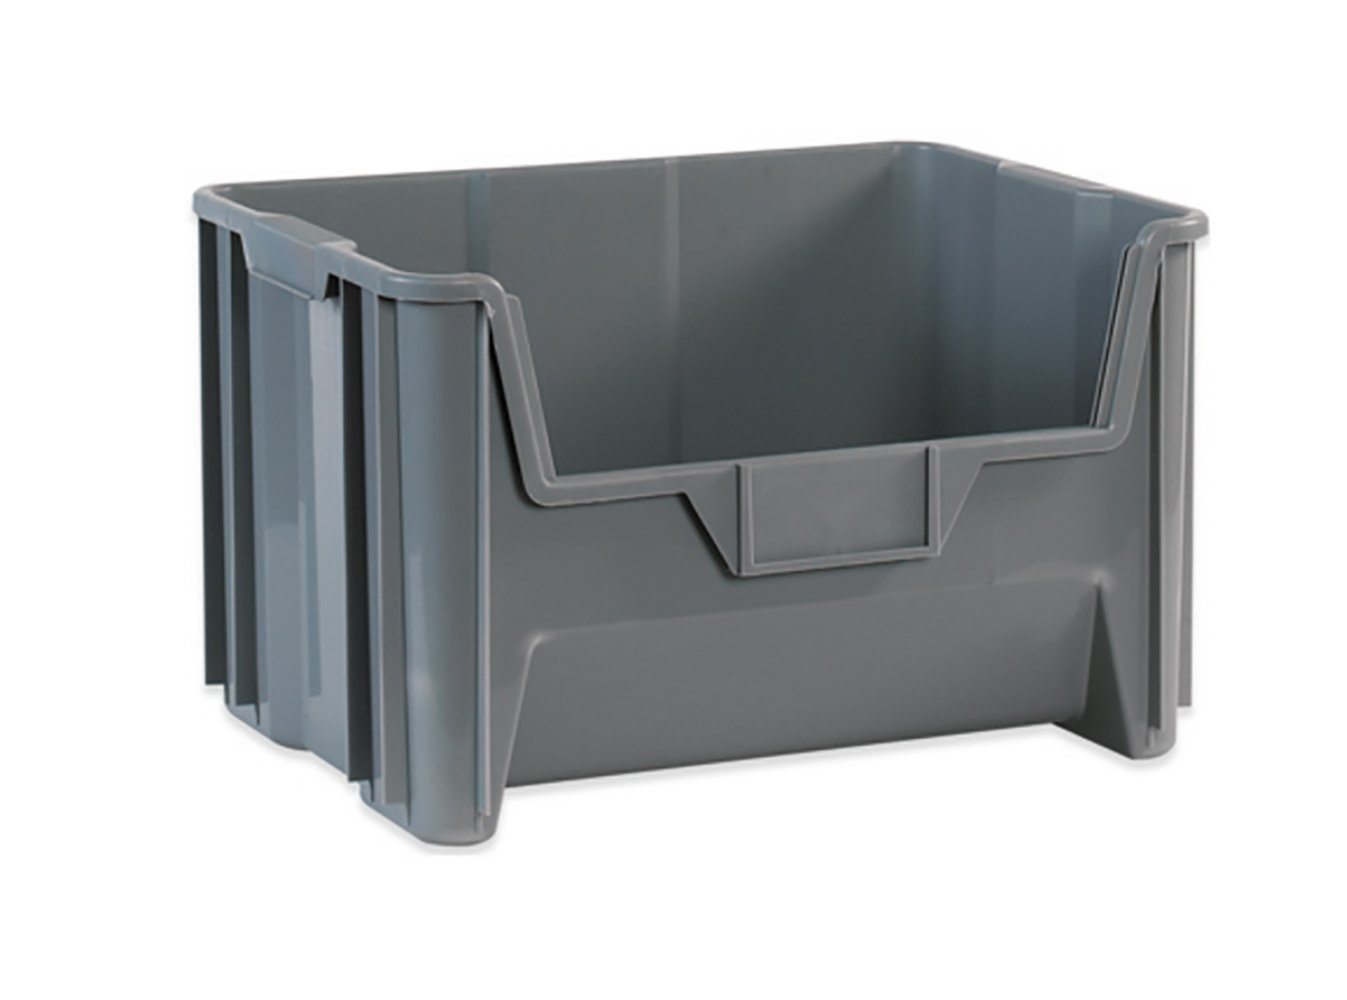 "RetailSource BING112- 19 7/8"" x 15 1/4"" x 12 7/16"" Gray Giant Stackable Bins (Pack of 3)"